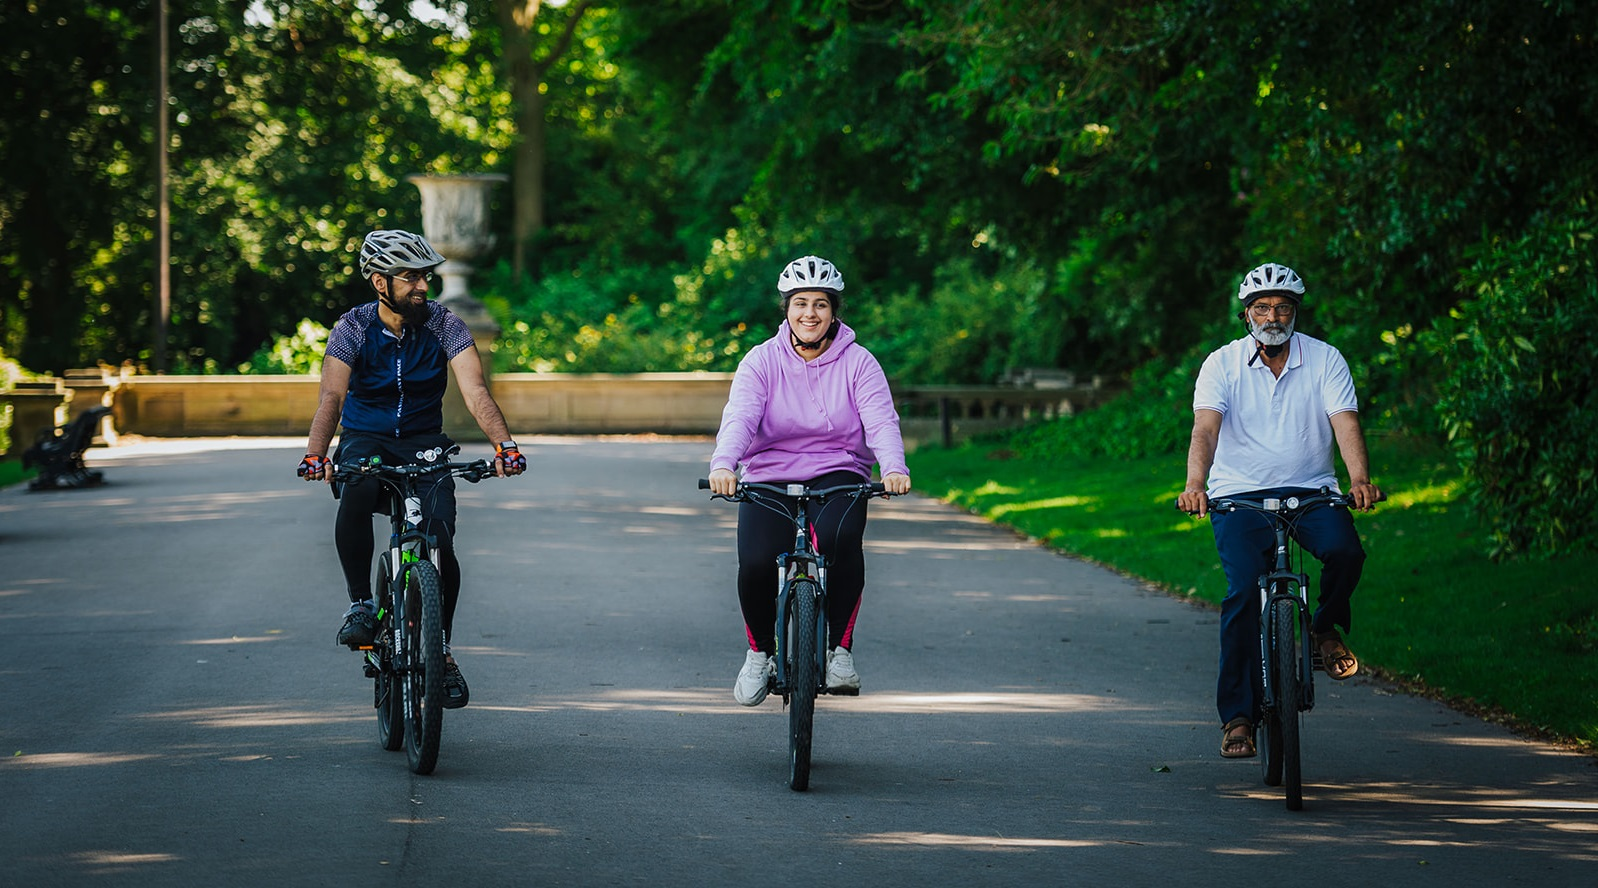 Three Calderdale residents riding bikes in Park Ward